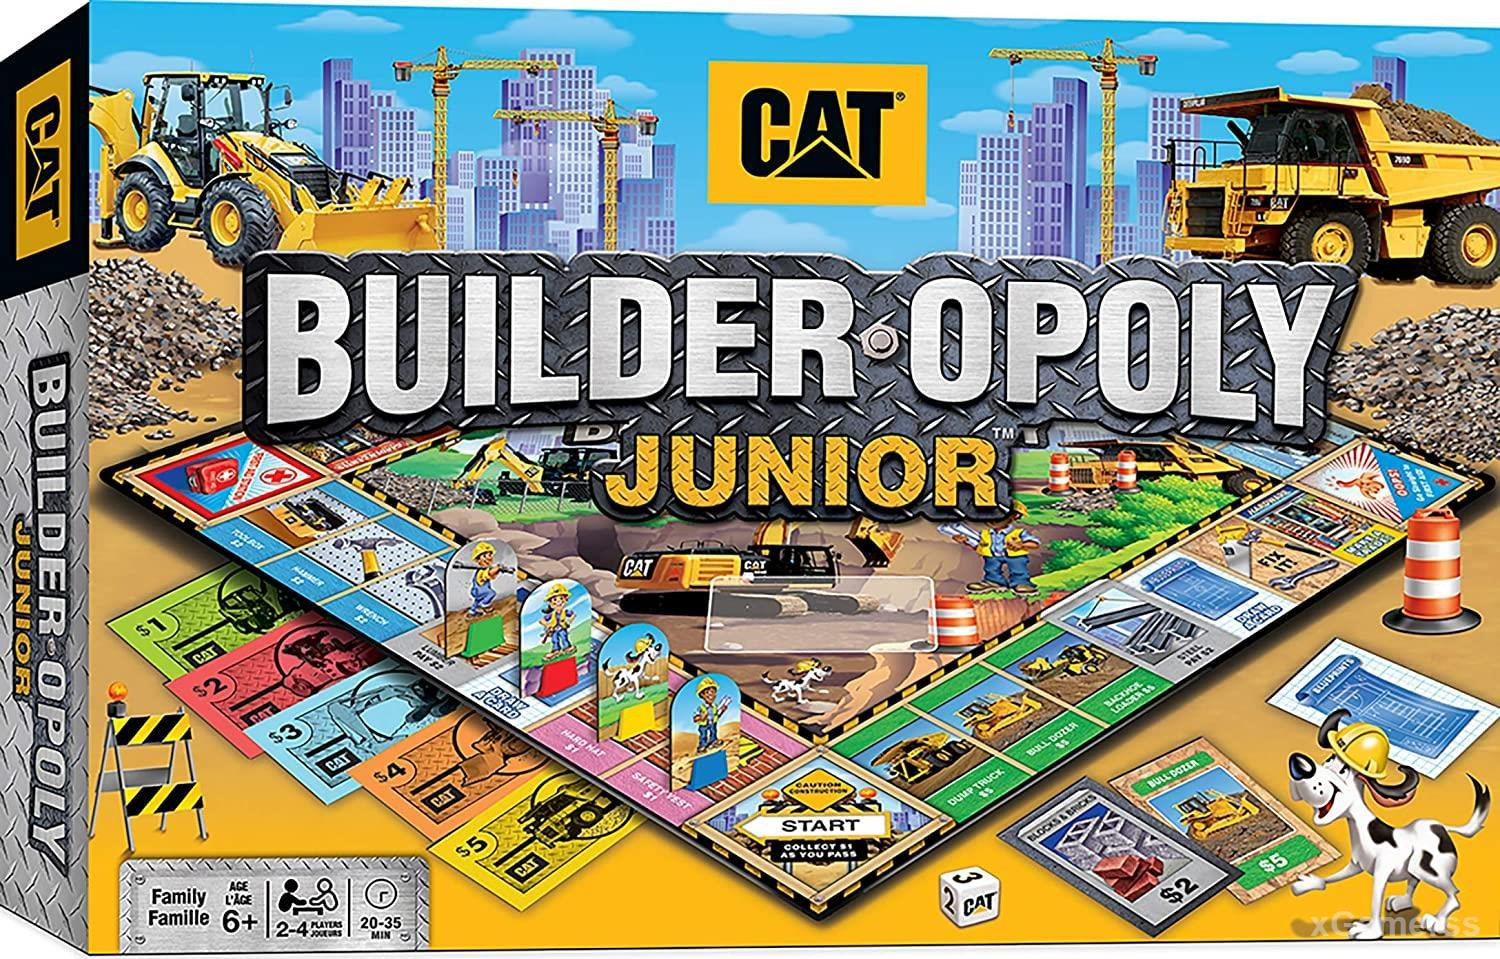 Builder Opoly Jr - set by the Masterpieces company